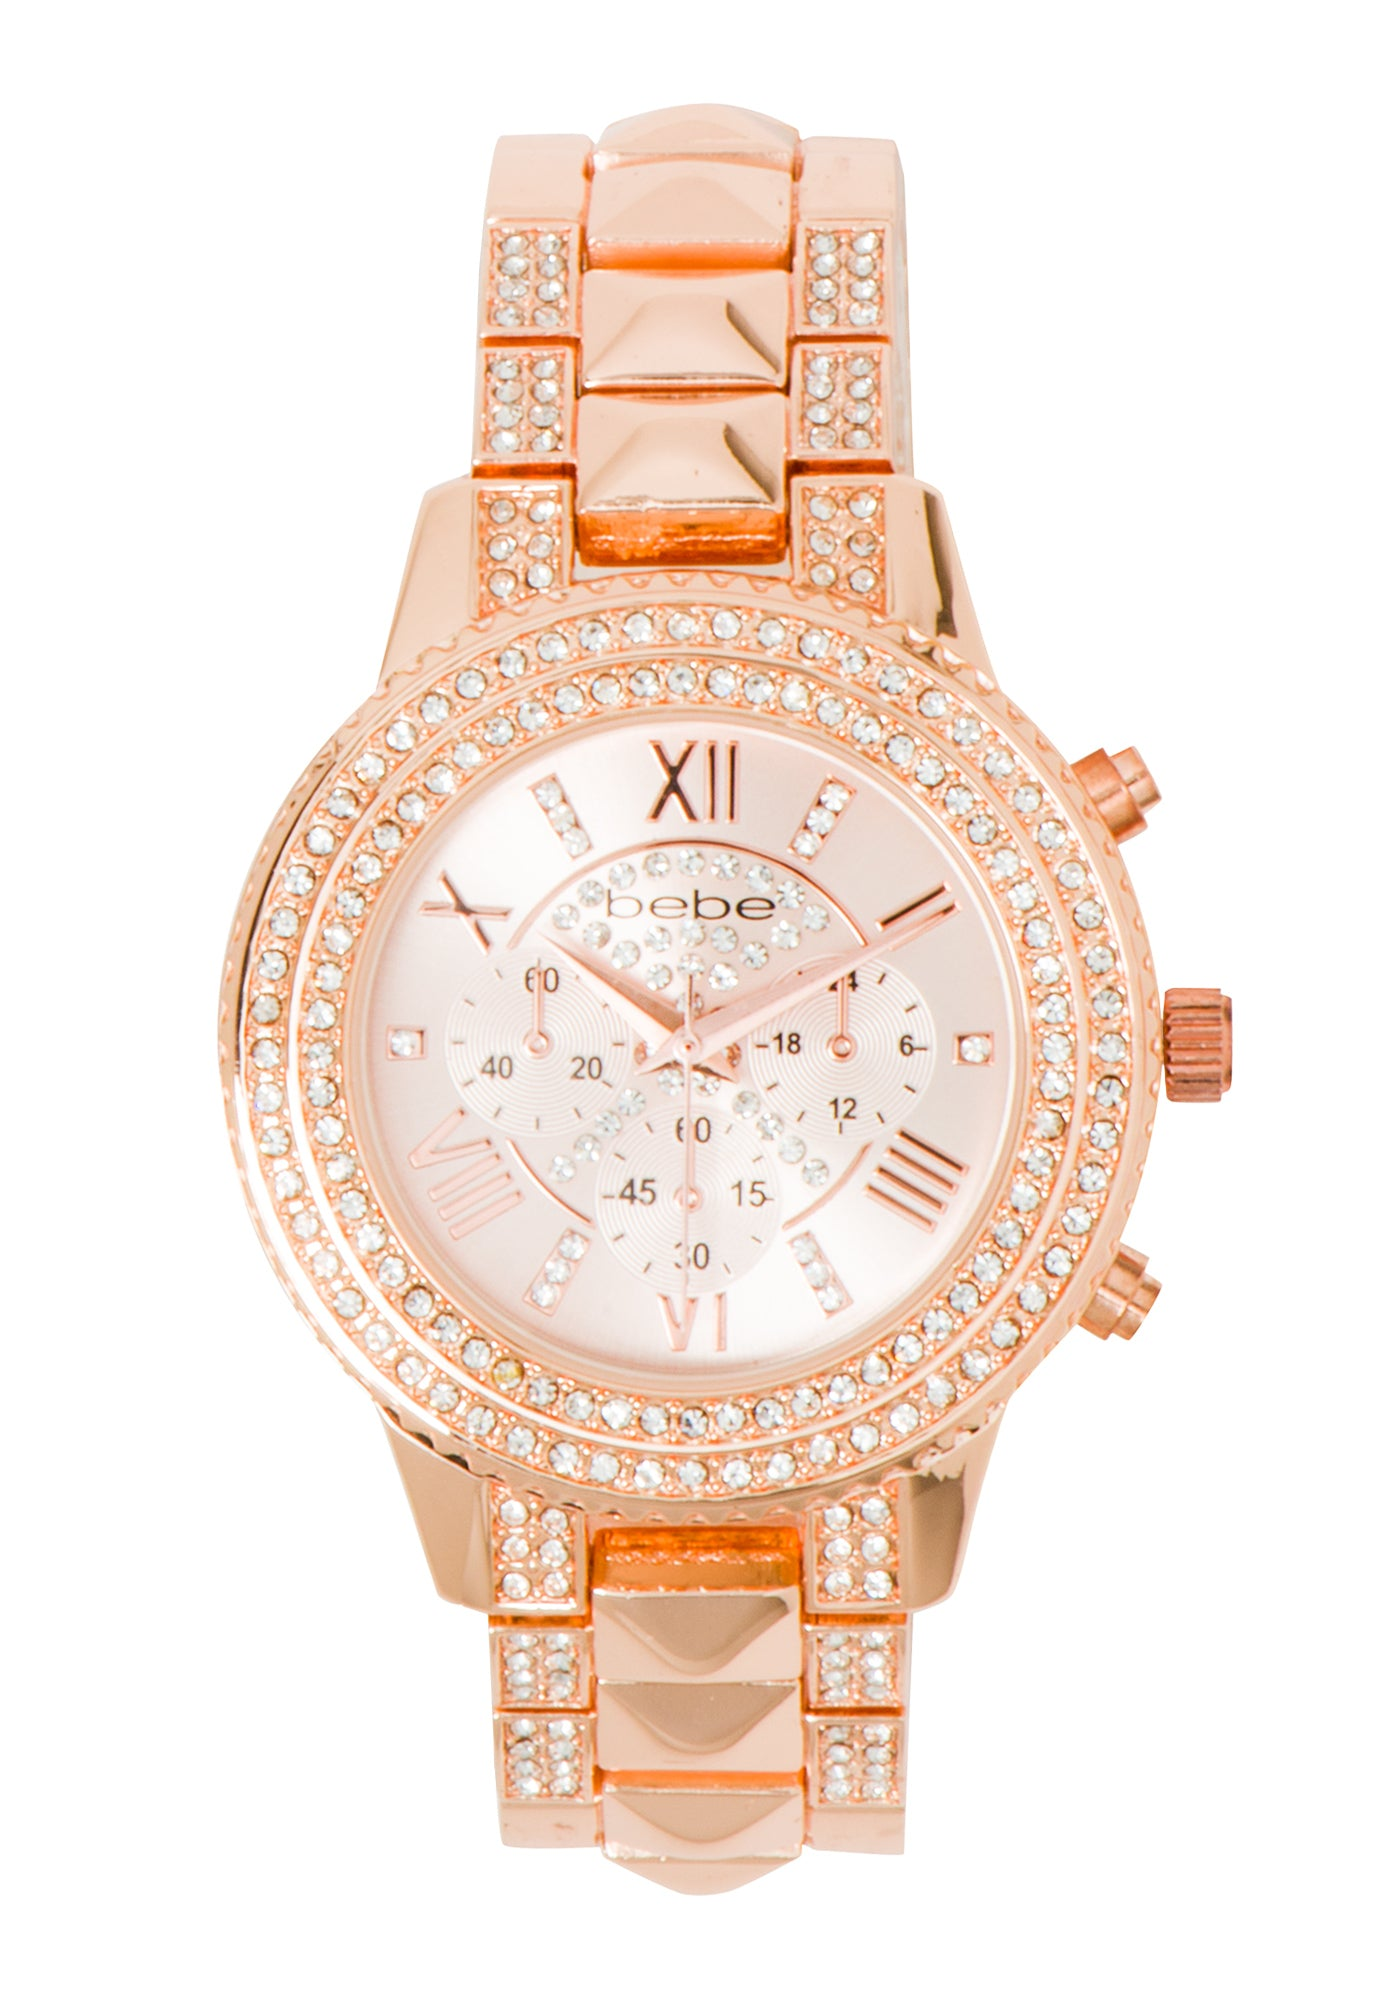 Women's Bebe Pyramid Watch in ROSE GOLD Metal